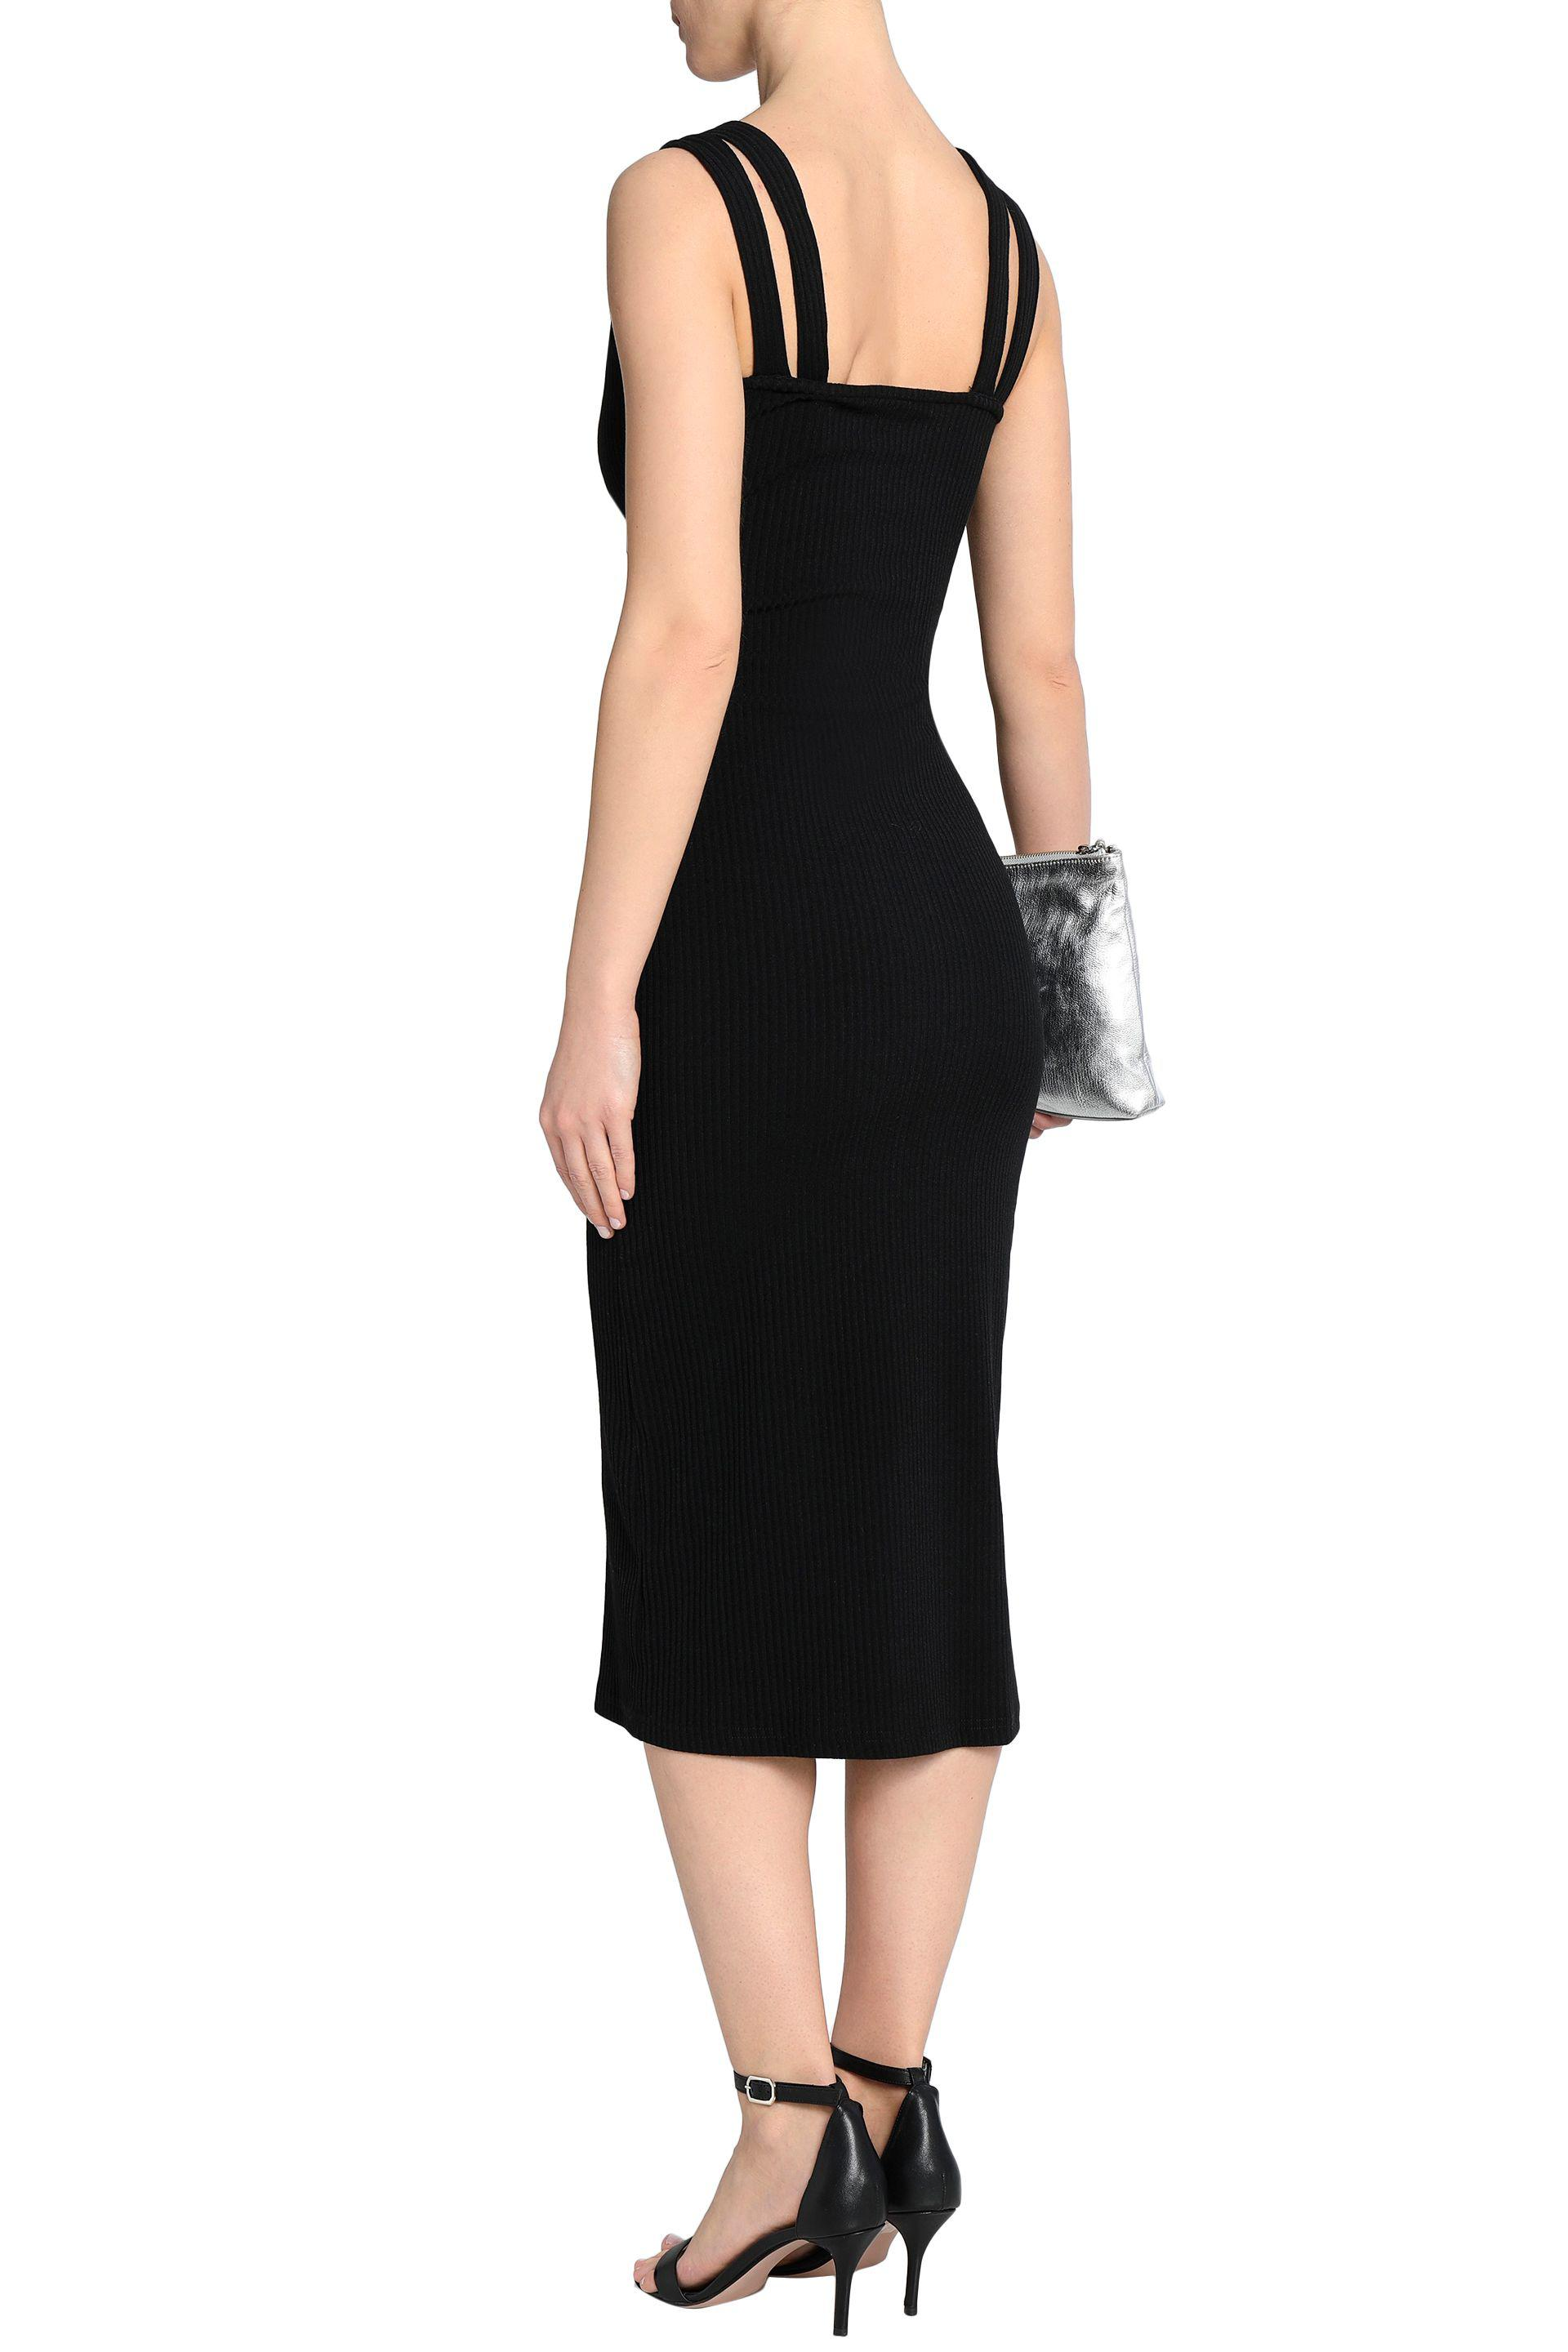 W118 By Walter Baker Woman Erik Cutout Ribbed Cotton-blend Midi Dress Black Size L W118 by Walter Baker 2018 New For Sale Footlocker Sale Pay With Paypal Sale Shop Offer pZb8Yg